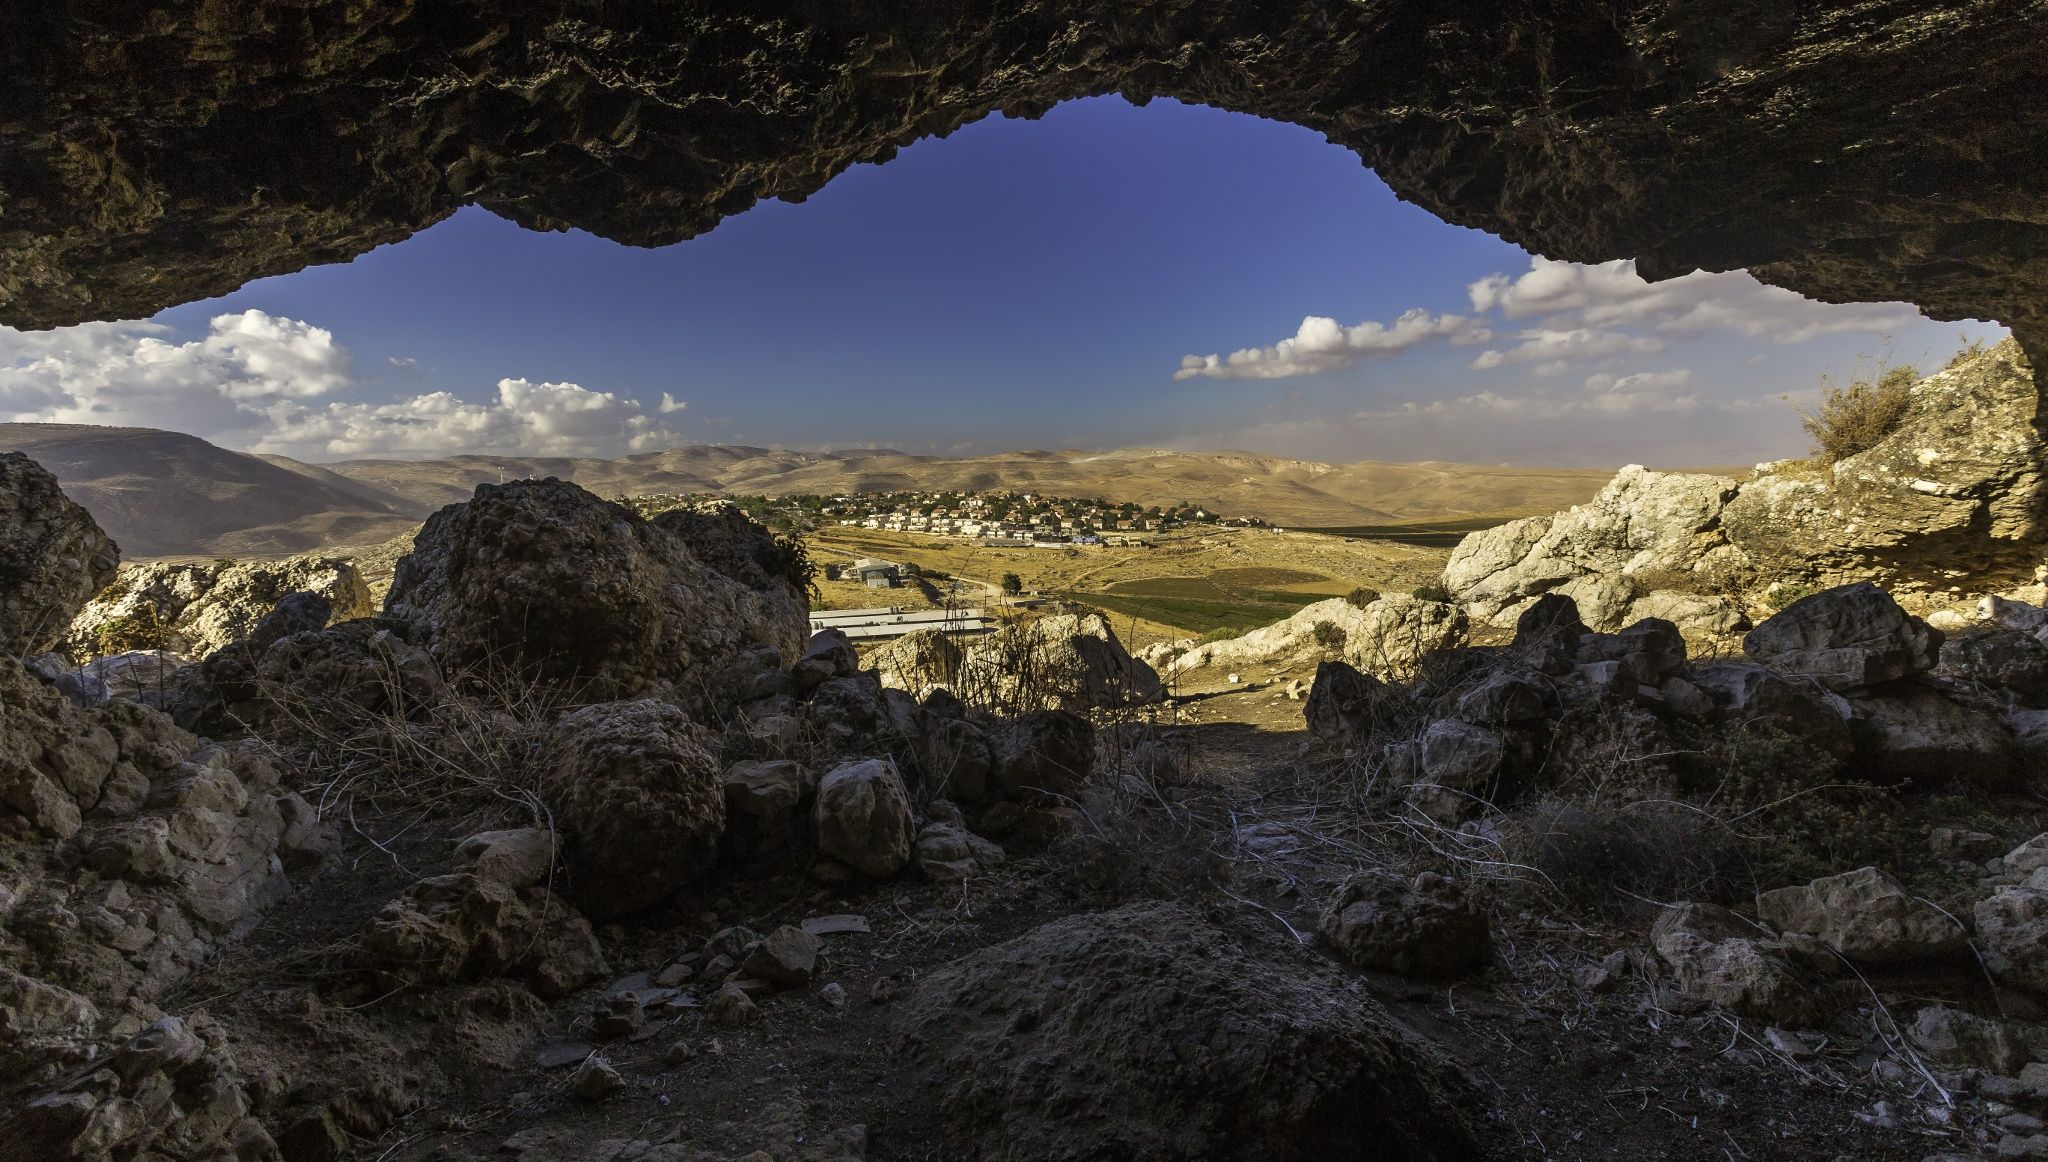 "Shepherds Cave by Fred Meyerink on 500px""Inside a Shepherds cave in Israel, tough shot to take because of the darkness inside of the cave and the brightness of the afternoon sun."" Click source to see larger image."